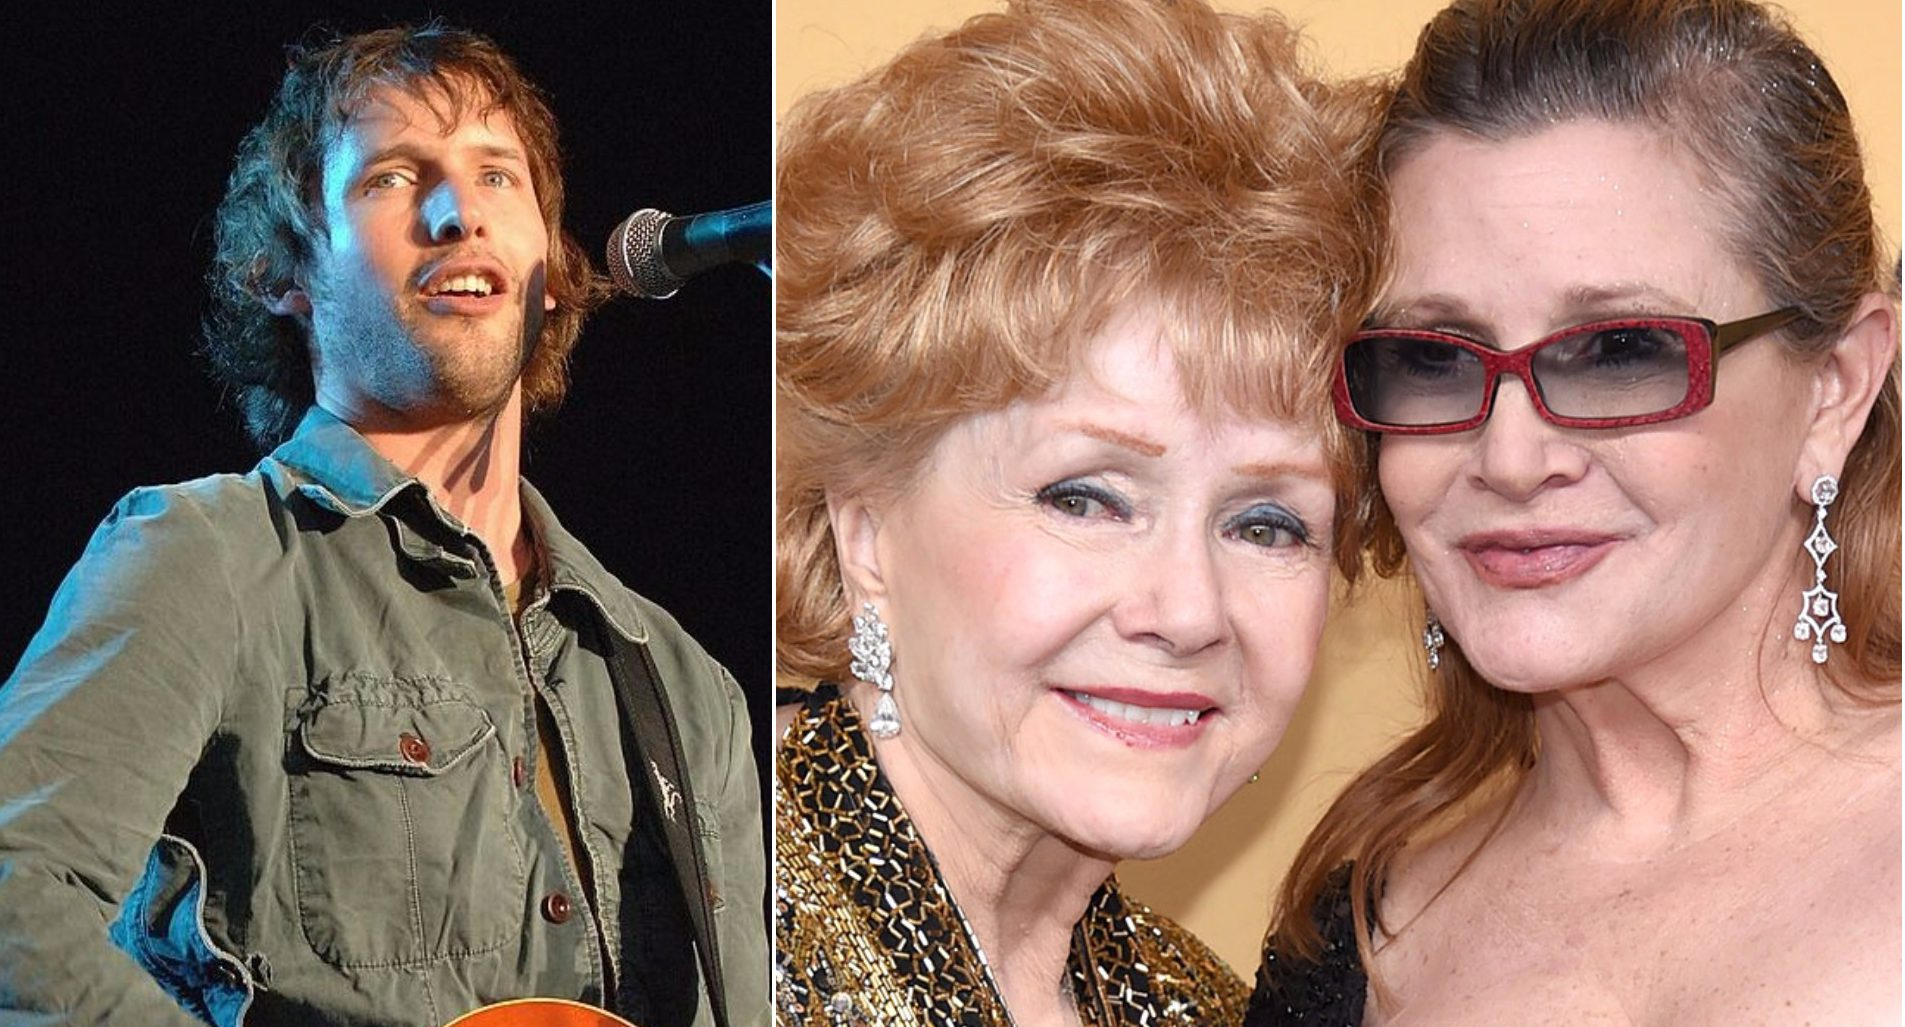 James Blunt has written a song for Carrie Fisher and Debbie Reynolds' memorial service